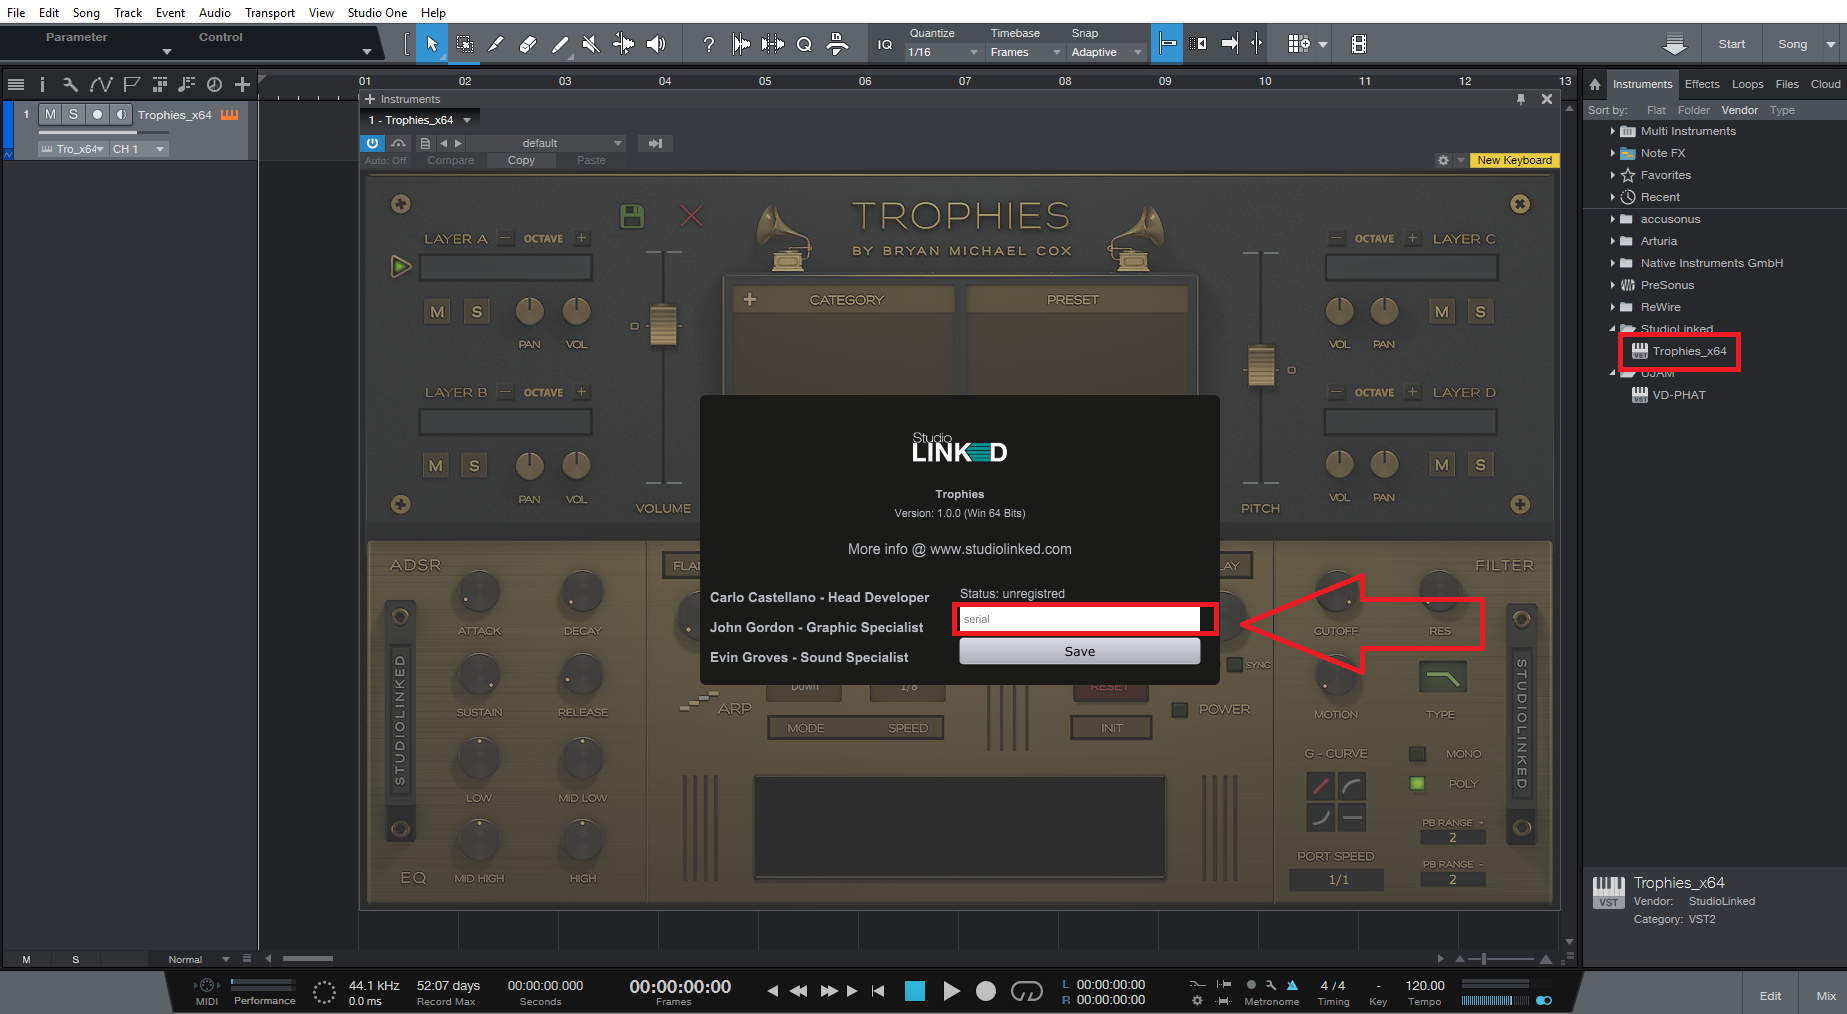 New - Installing the Studio Linked Trophies Plug-in that comes with